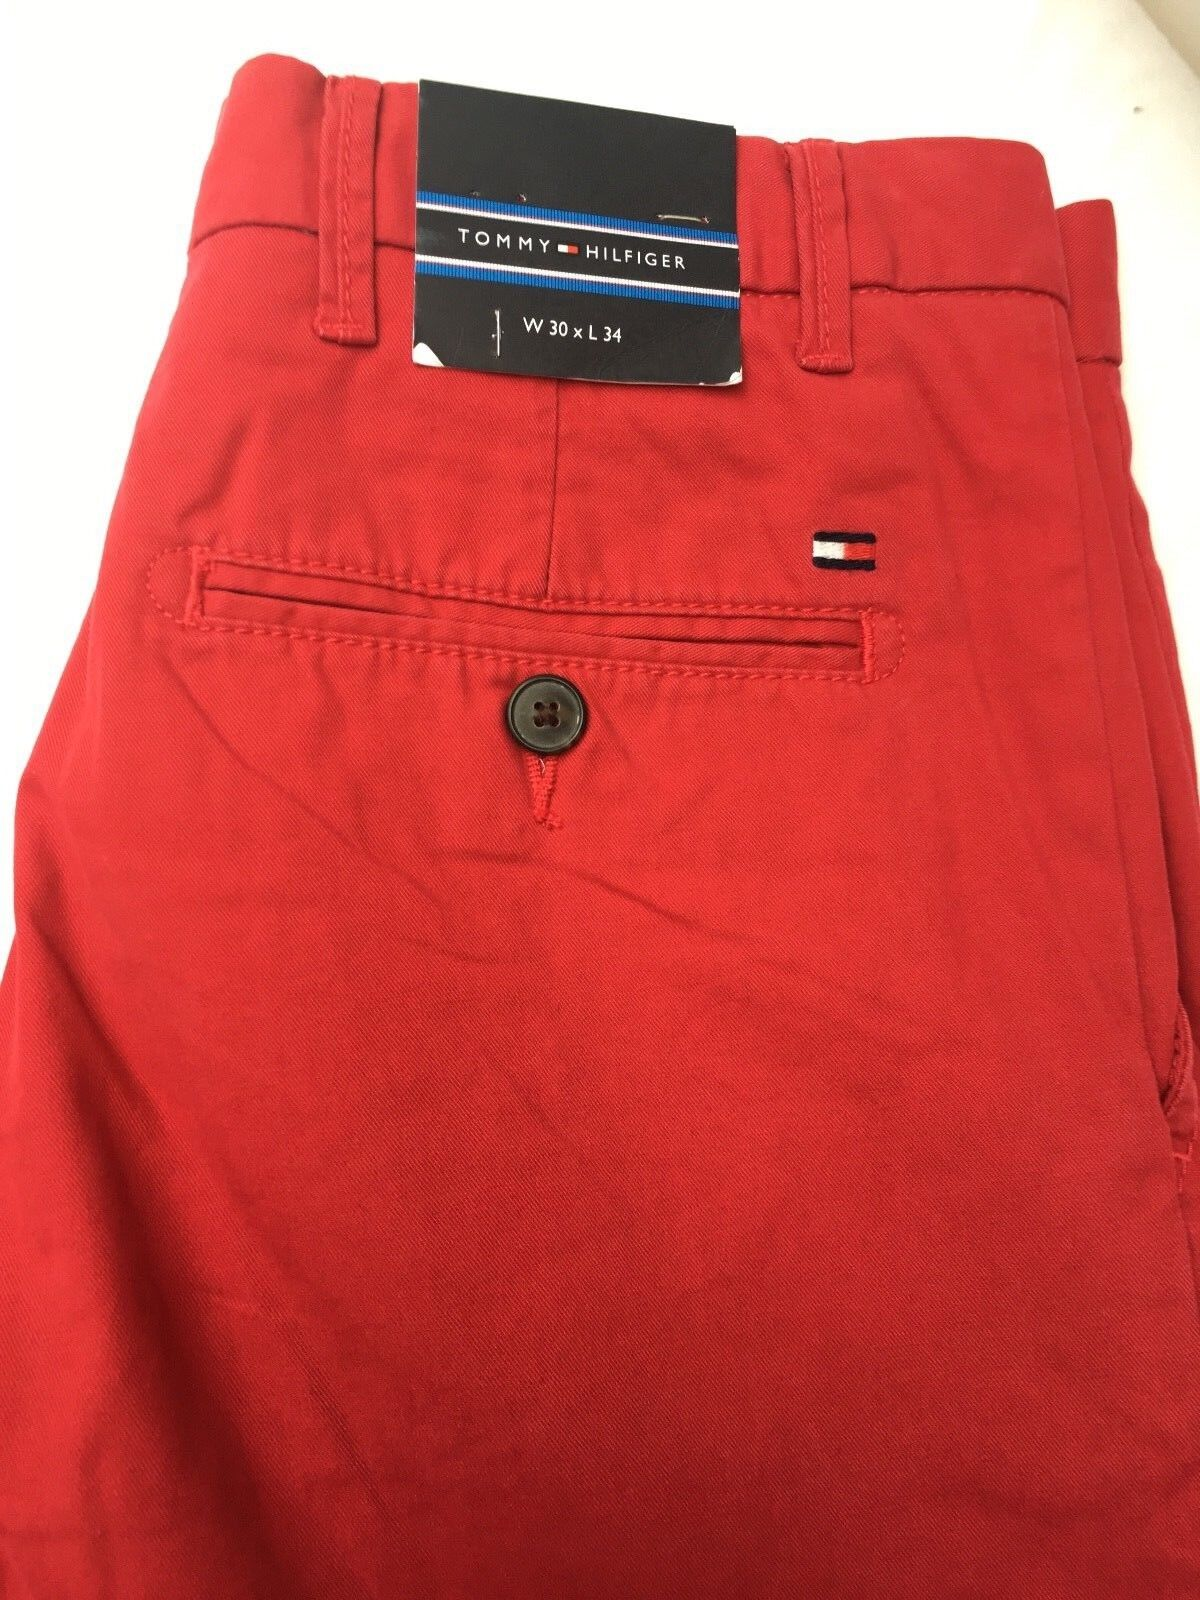 Tommy Hilfiger herren Mercer jeans chino rot  30Wx34L